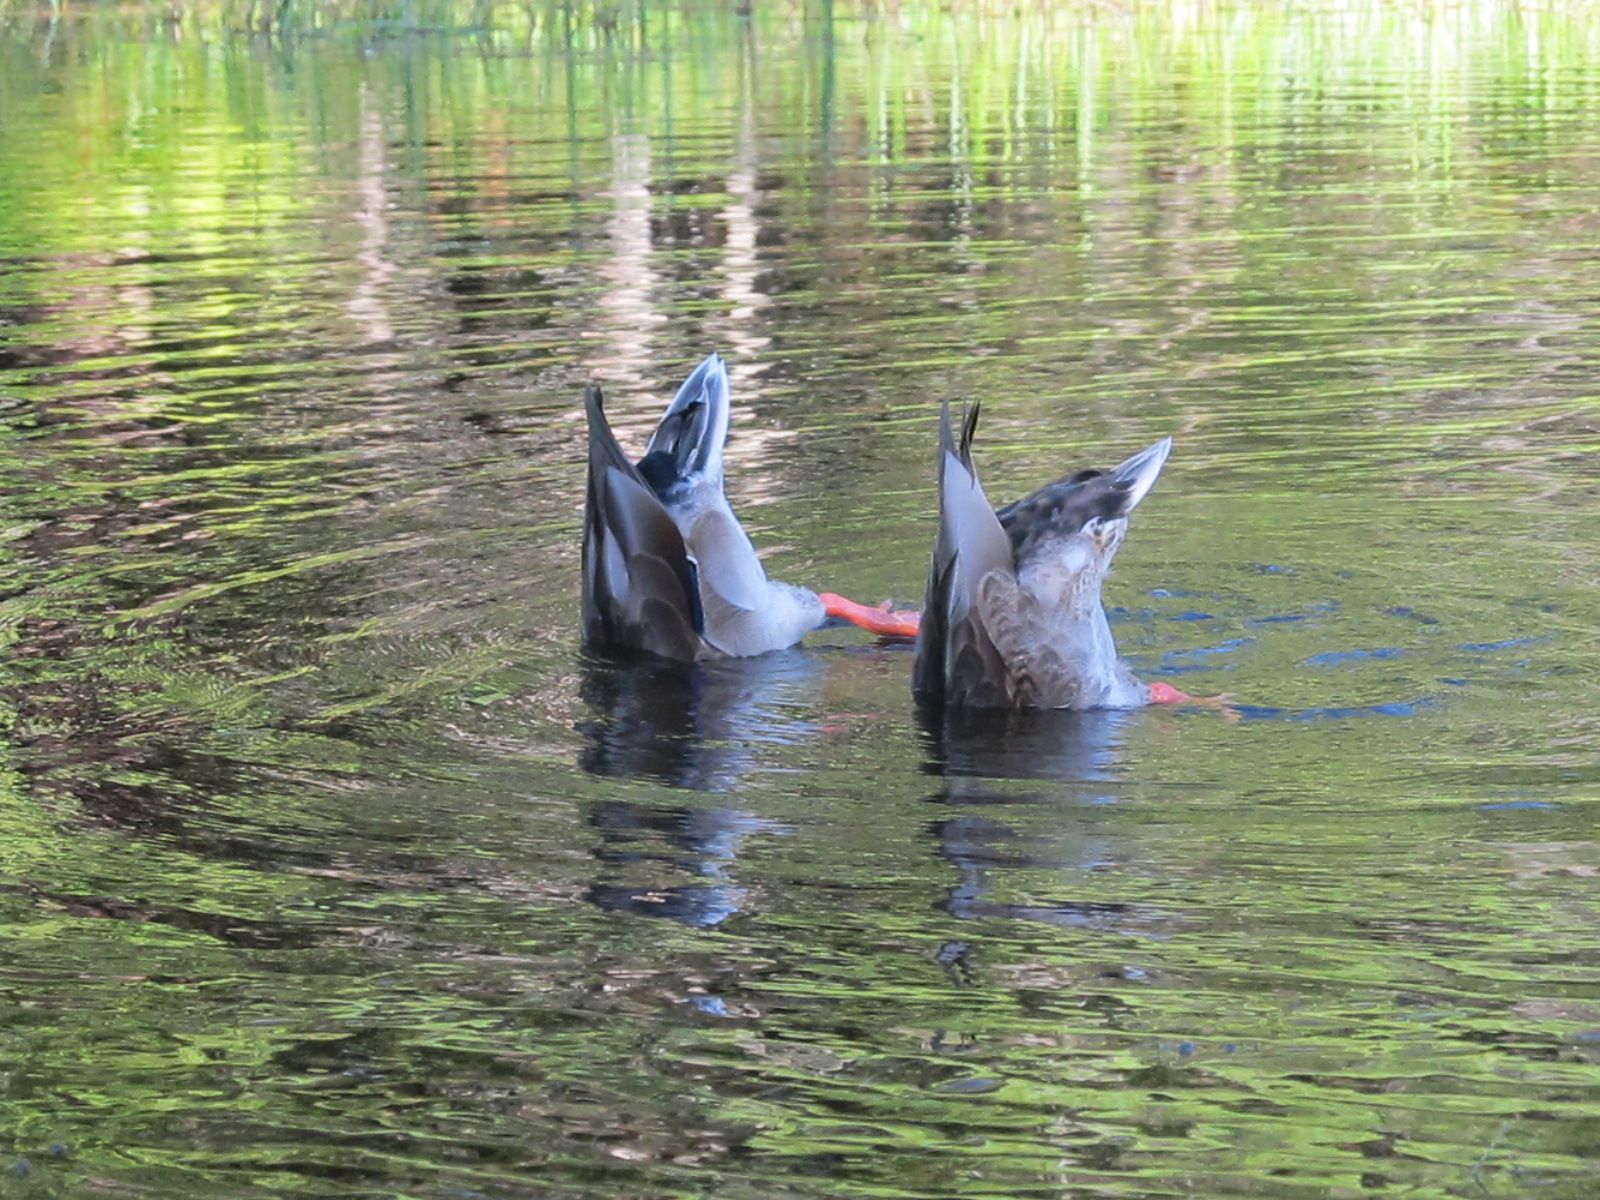 What is that?    Oh two ducks - Bottoms Up!